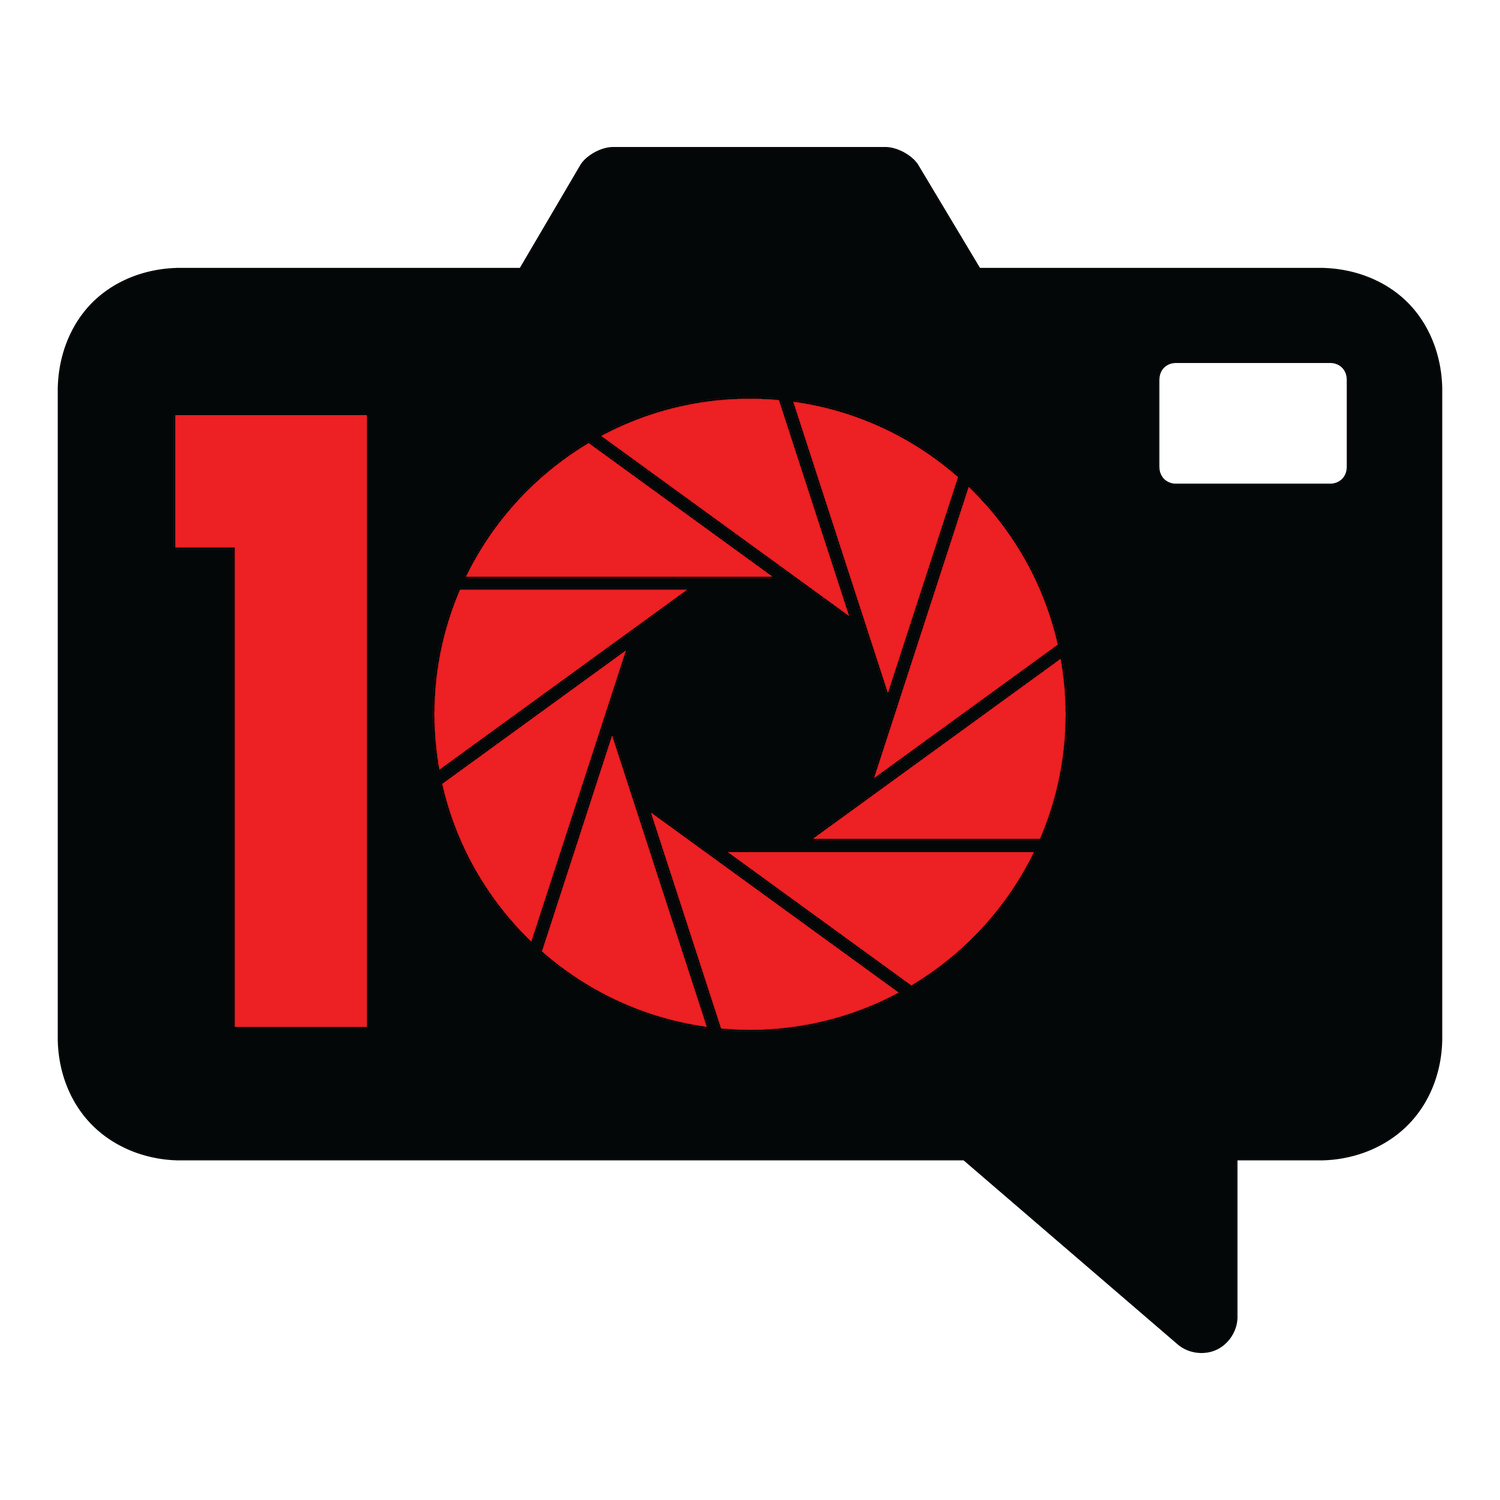 Thank You for 10 Years of the Phoblographer!